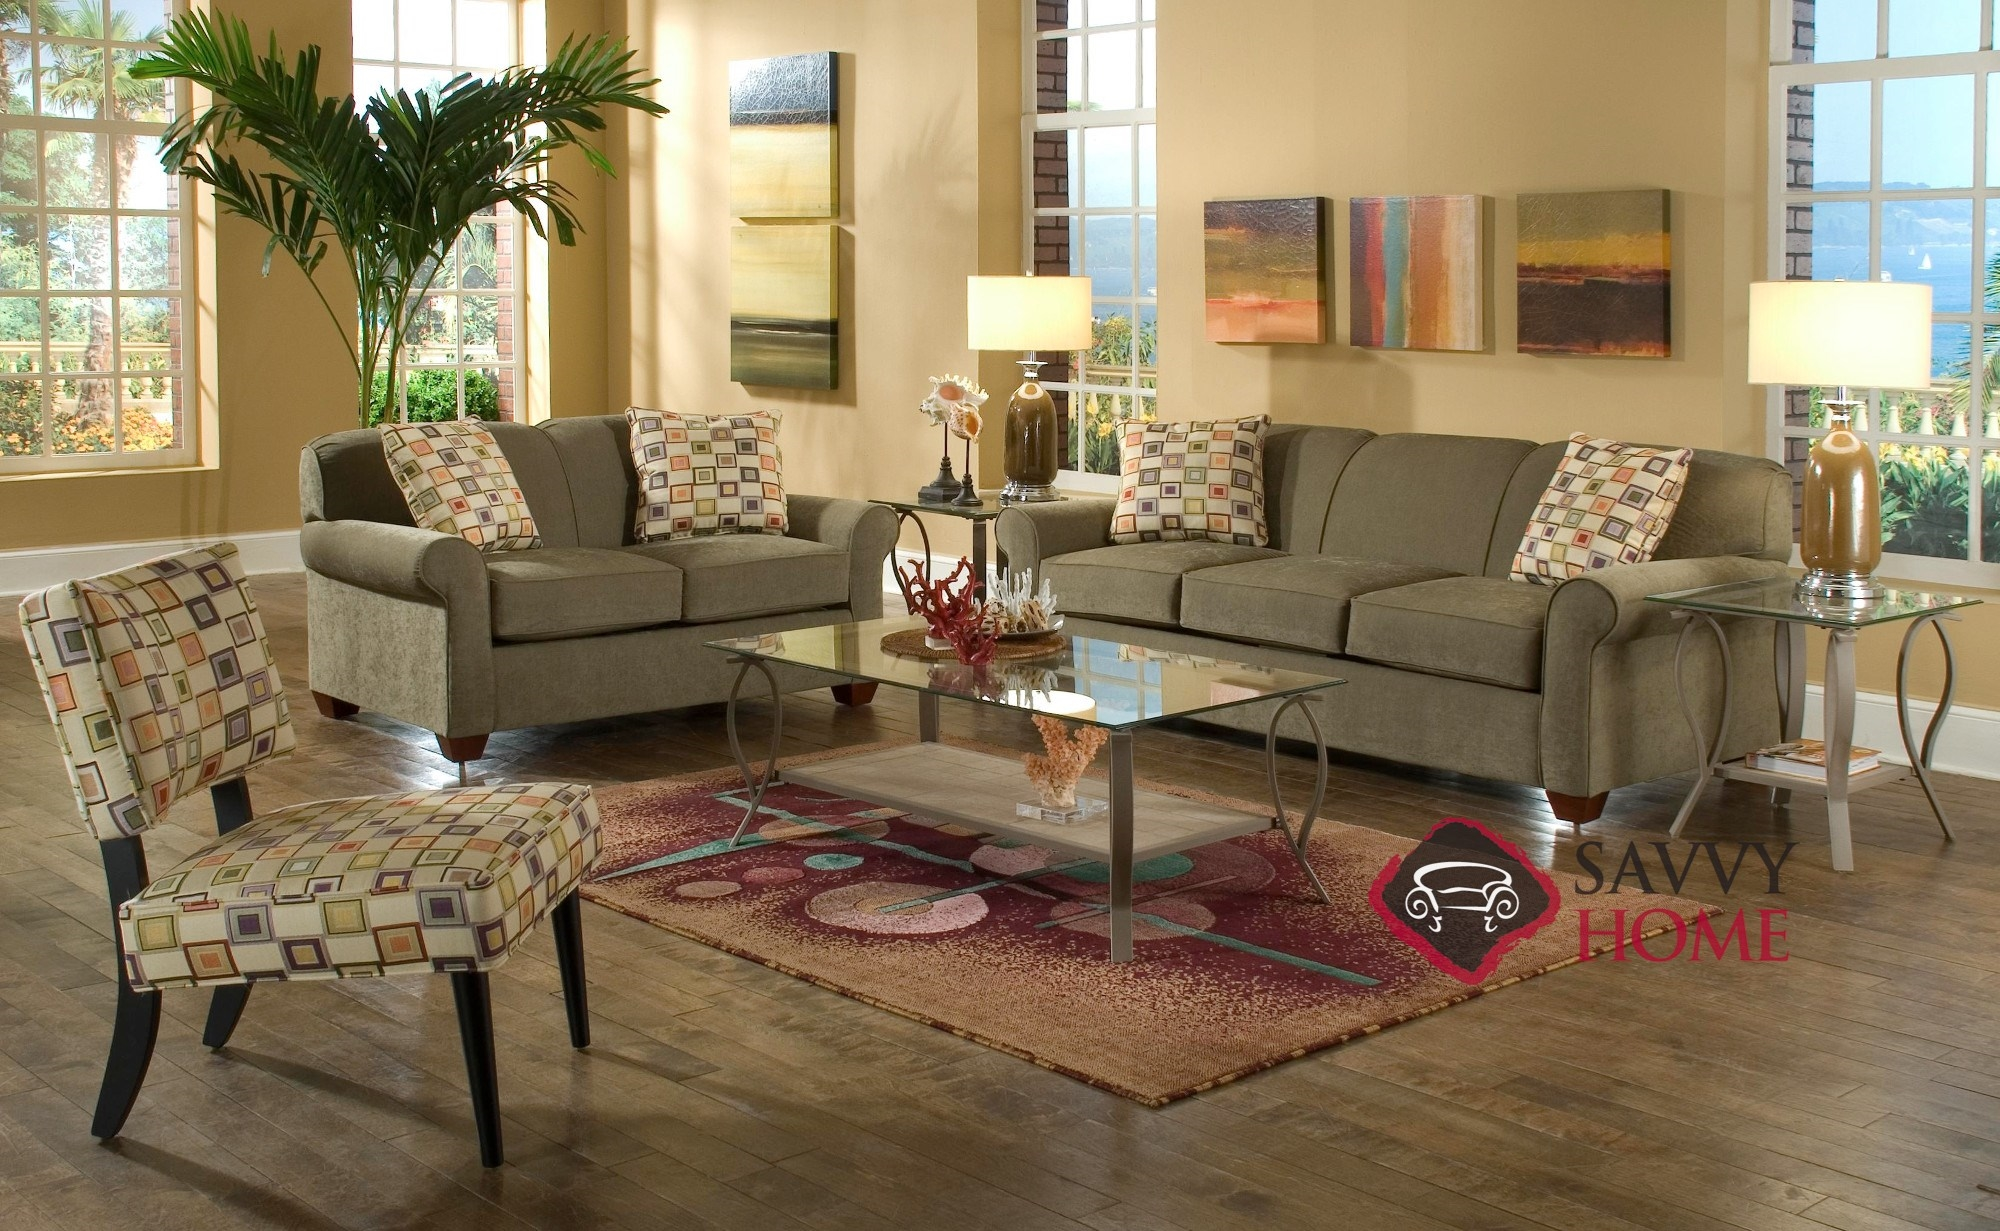 fabric sectional sofas calgary krause s sofa factory locations stationary by savvy is fully